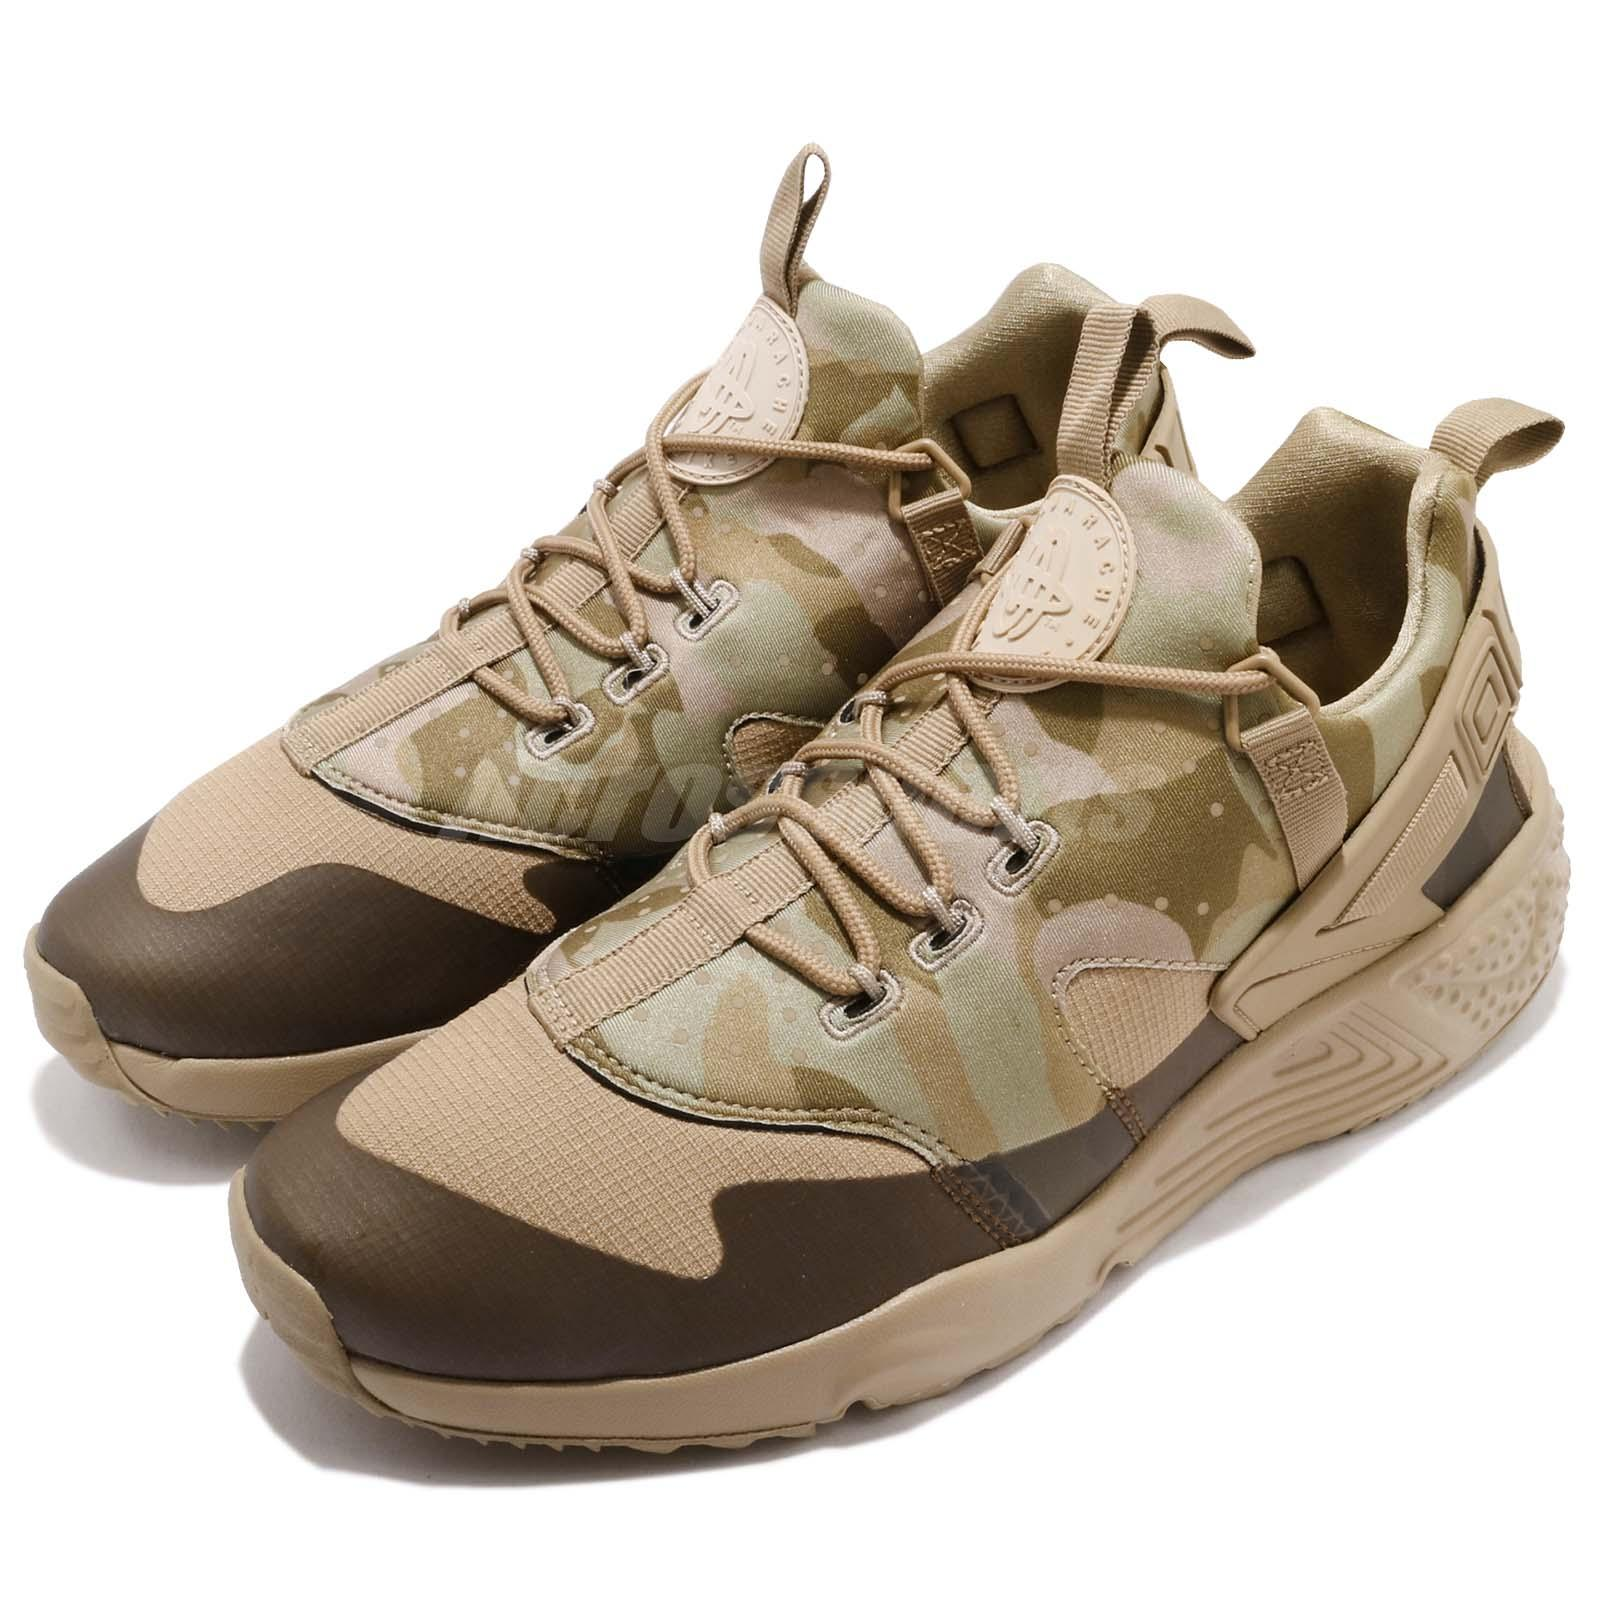 nike air huarache utility desert camo khaki olive mens. Black Bedroom Furniture Sets. Home Design Ideas